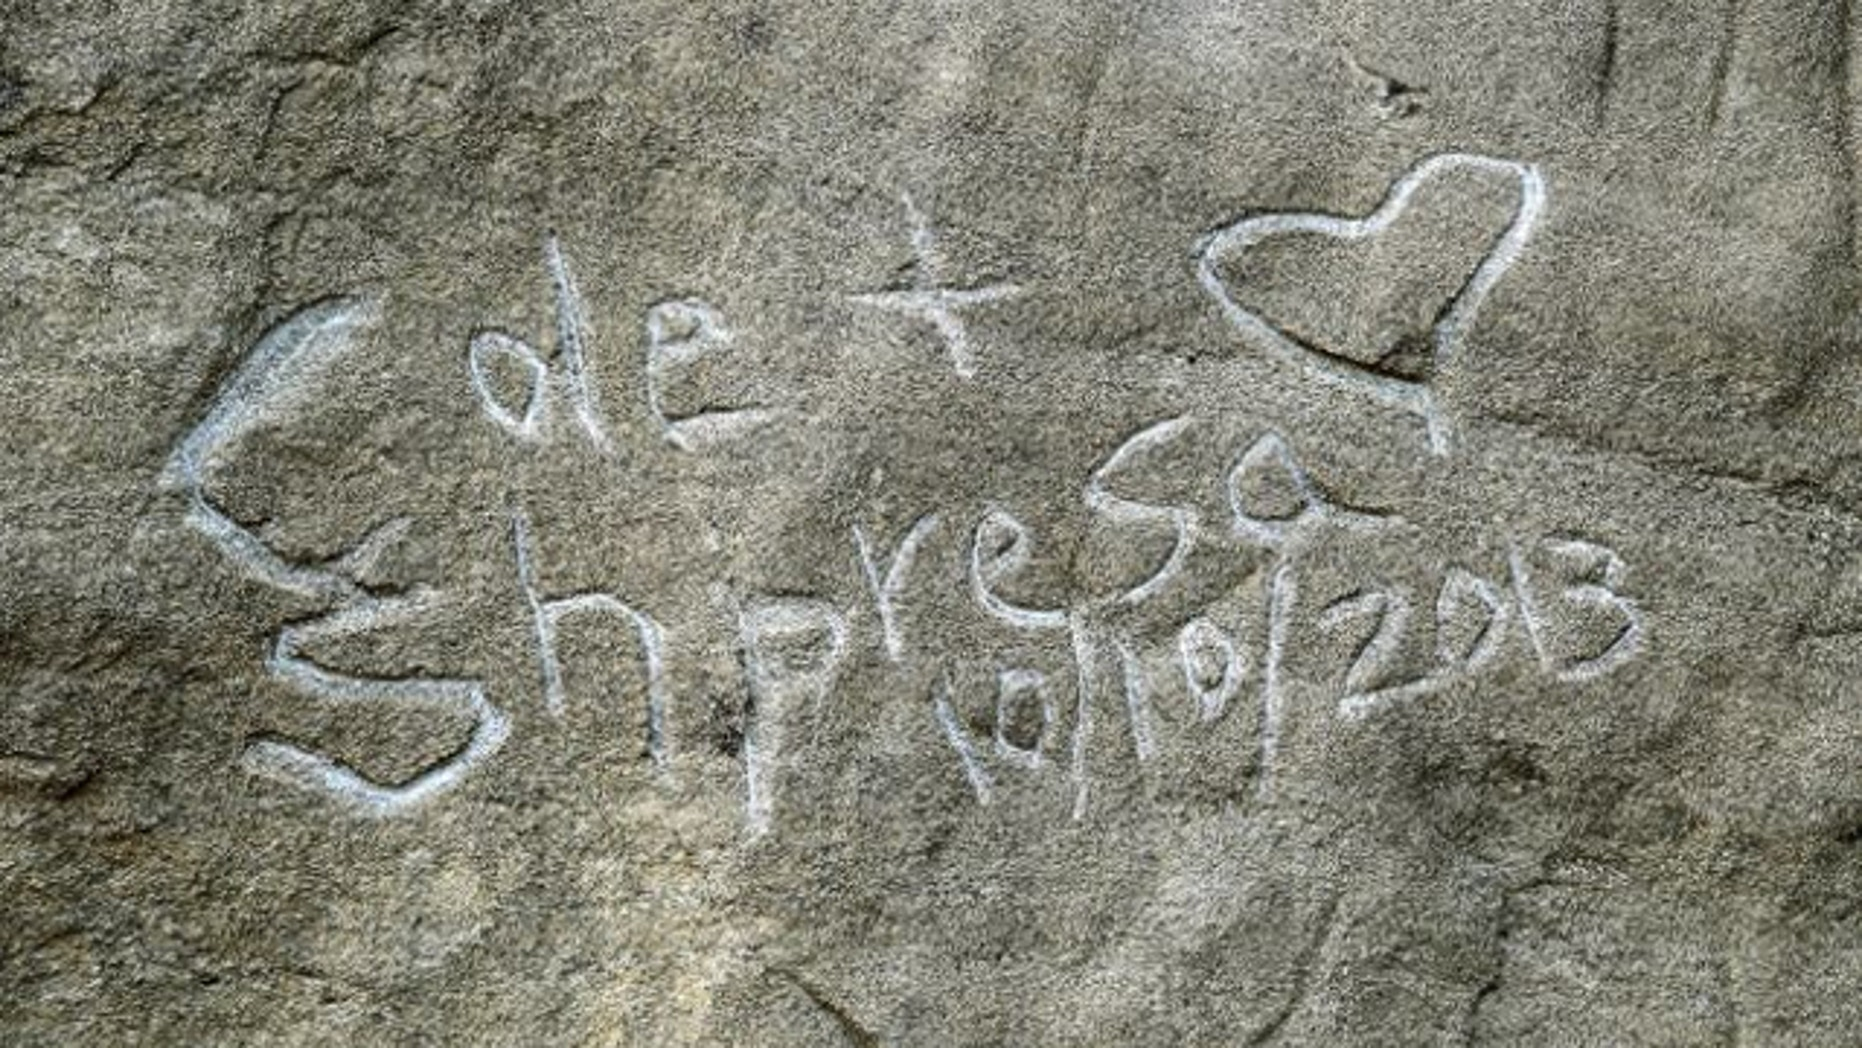 """Oct.. 31, 2013: Graffito spelling """"Cole & Shpresa 10/10/2013"""" is seen carved into the Pompeys Pillar National Monument in Montana."""